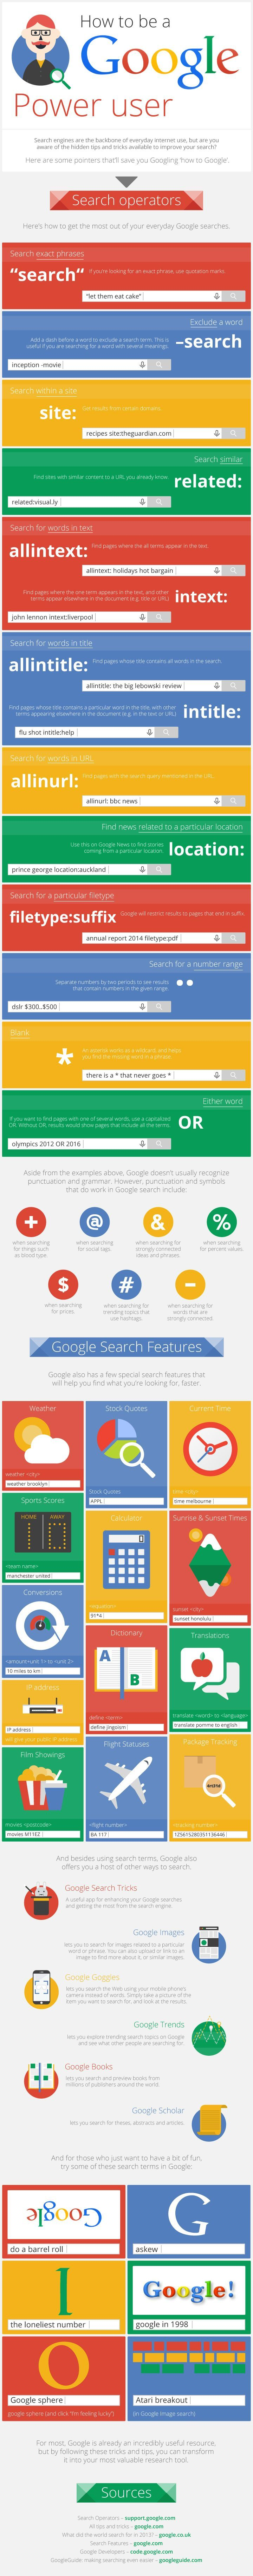 How to be a Google power user, infographic.